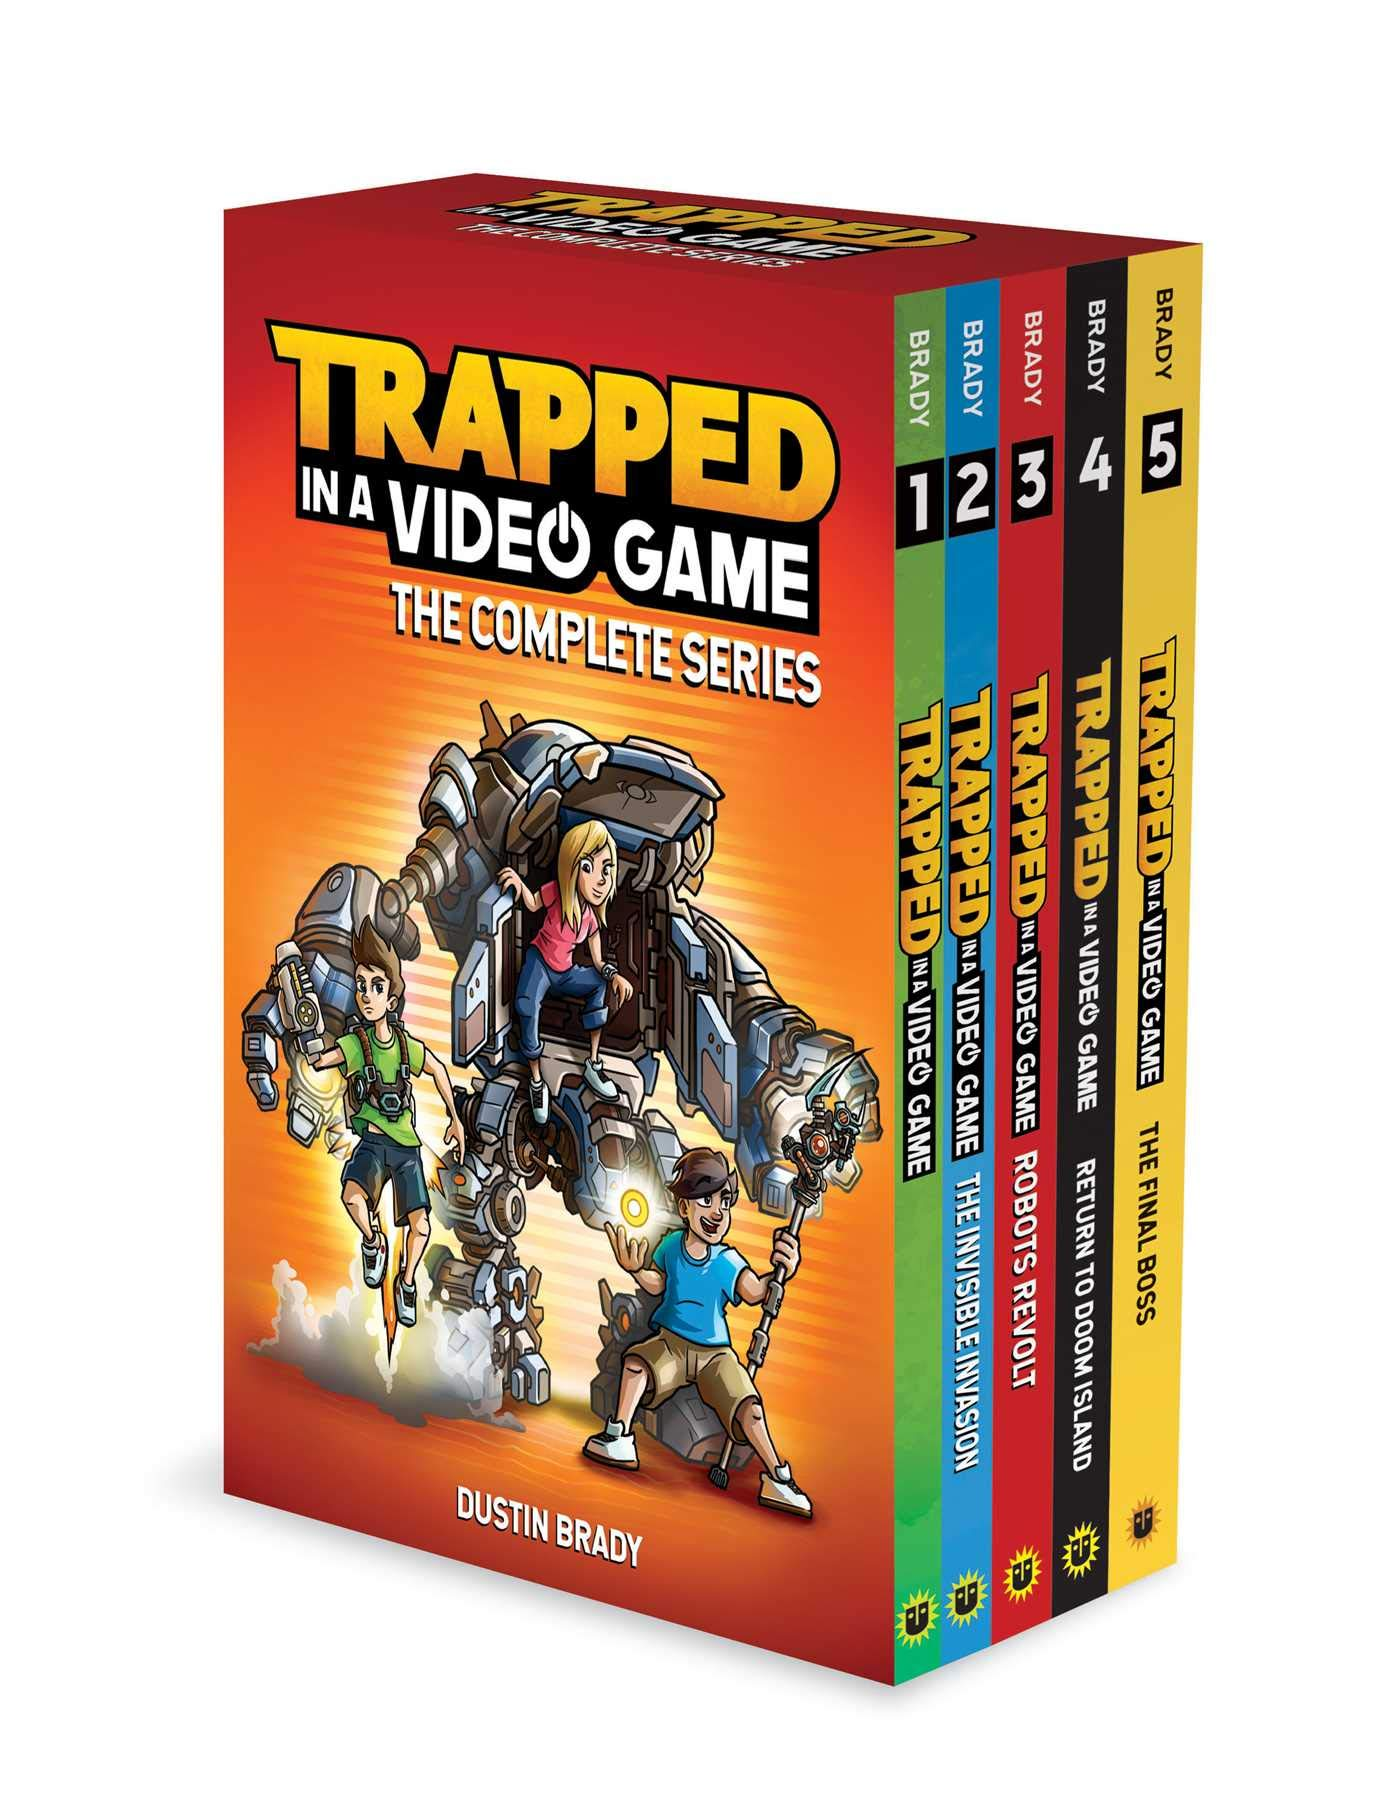 Trapped Video Game Dustin Brady product image